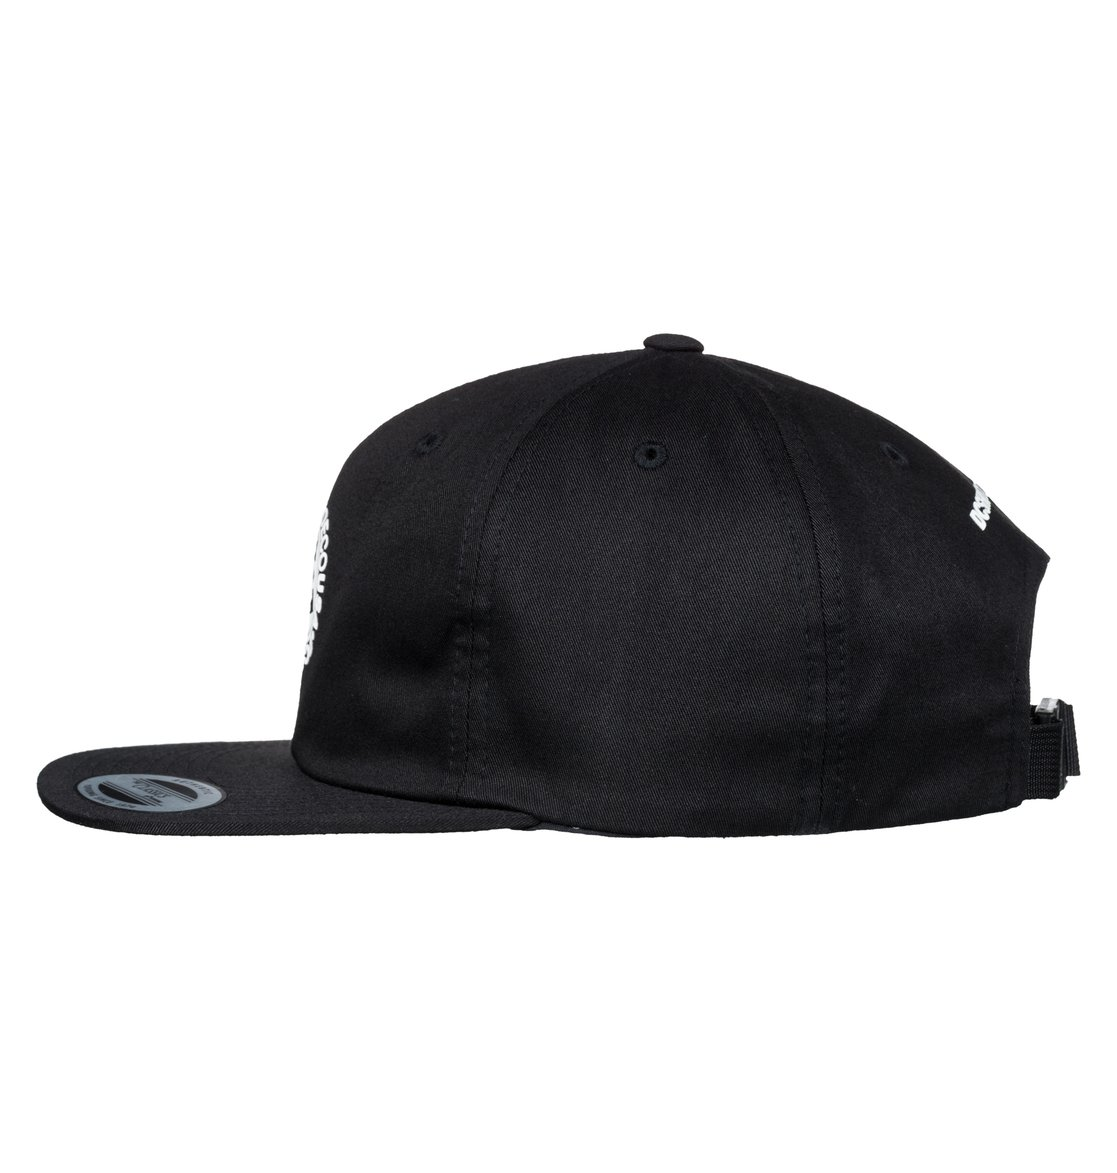 dc shoes Core Twill Dad - Cappellino Dad da Uomo - Black - DC Shoes